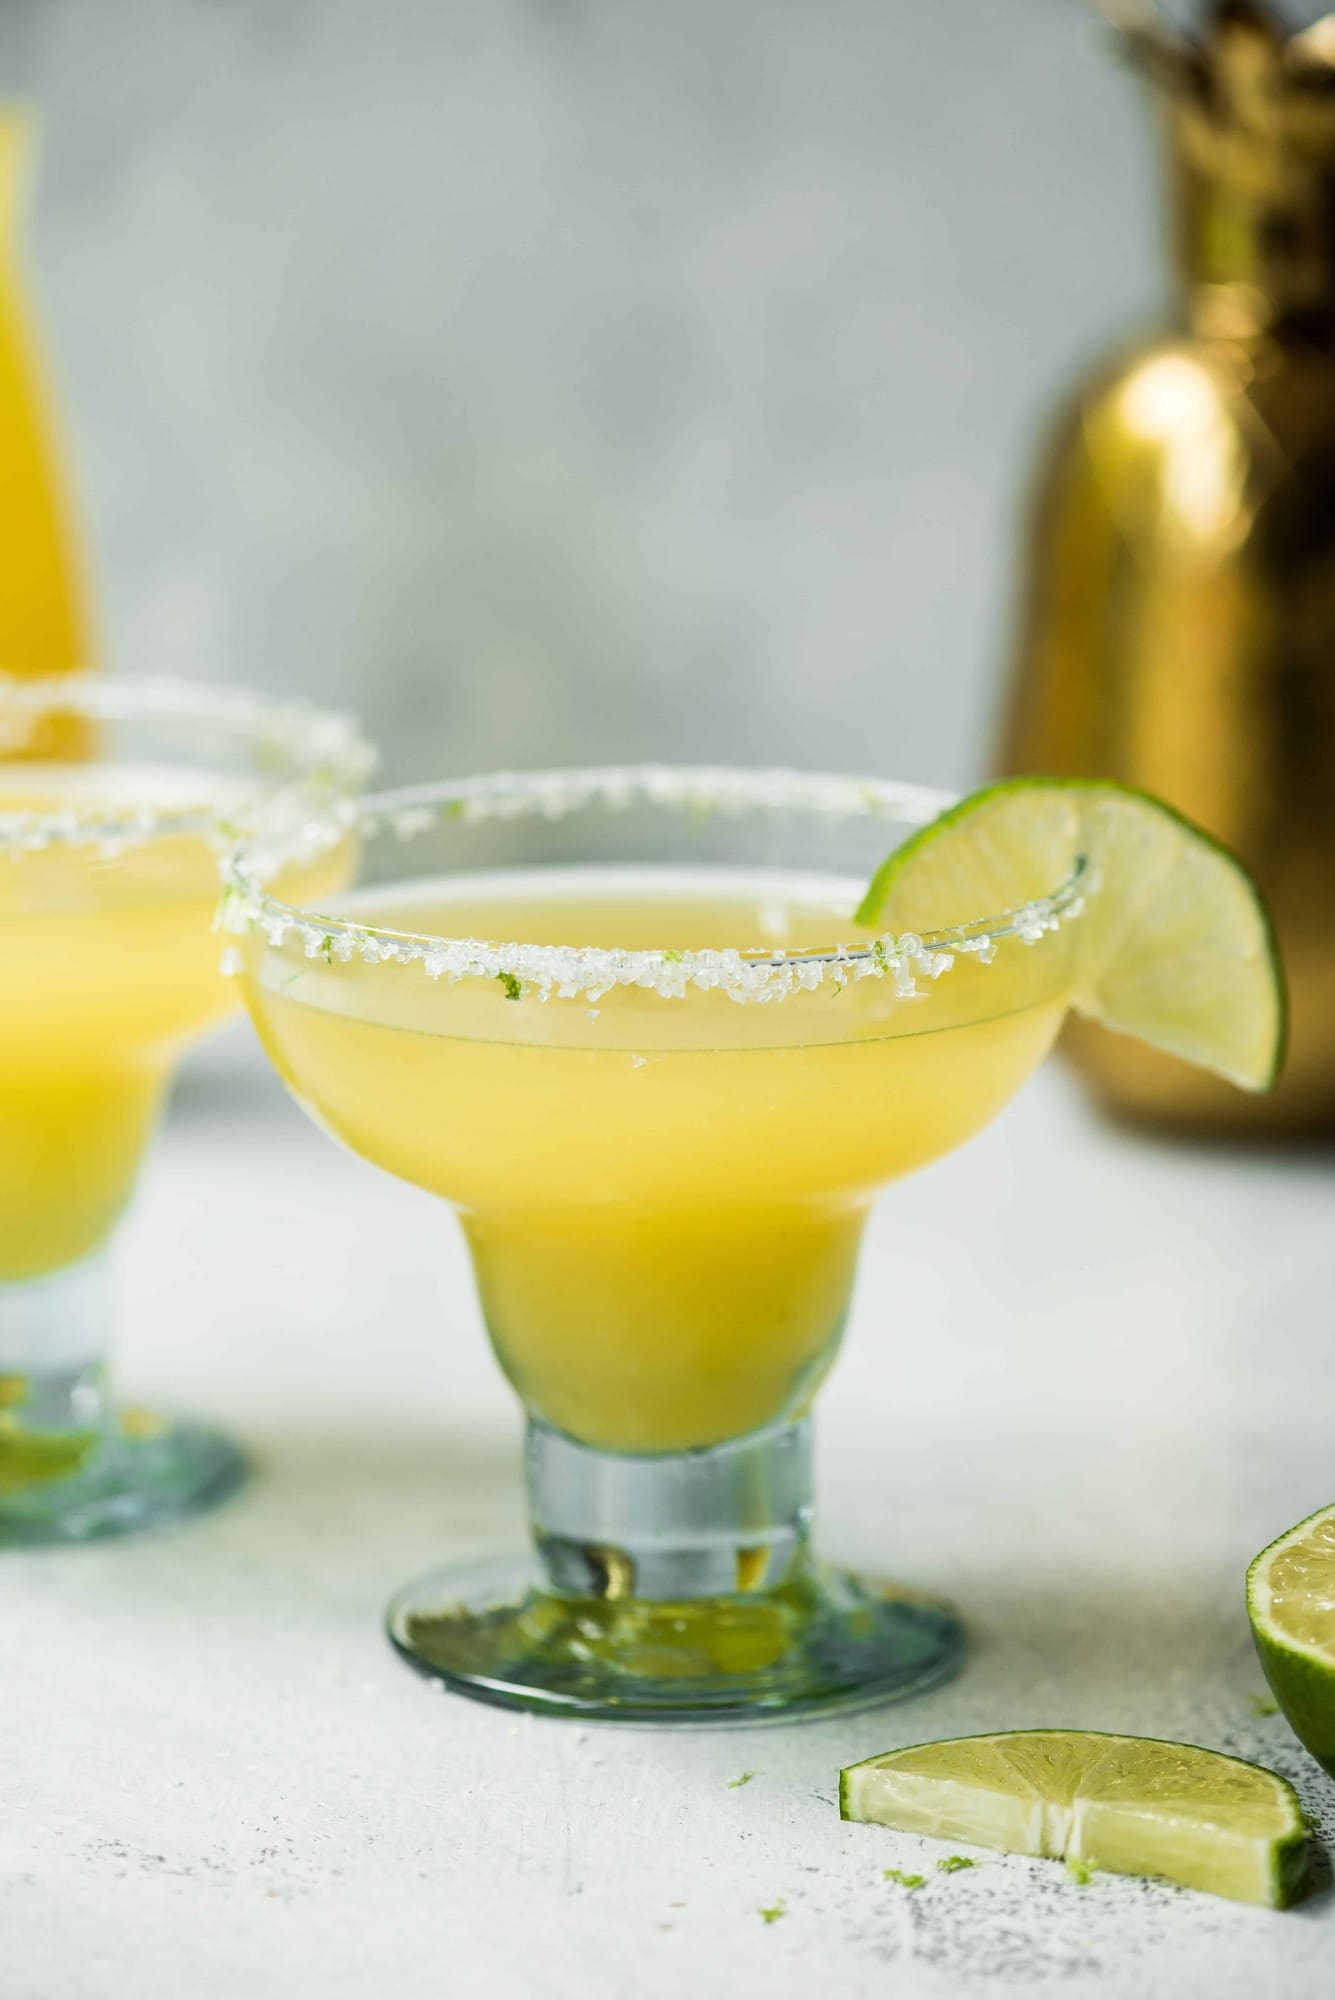 Pineapple jalapeno margarita garnished with lime on a white background